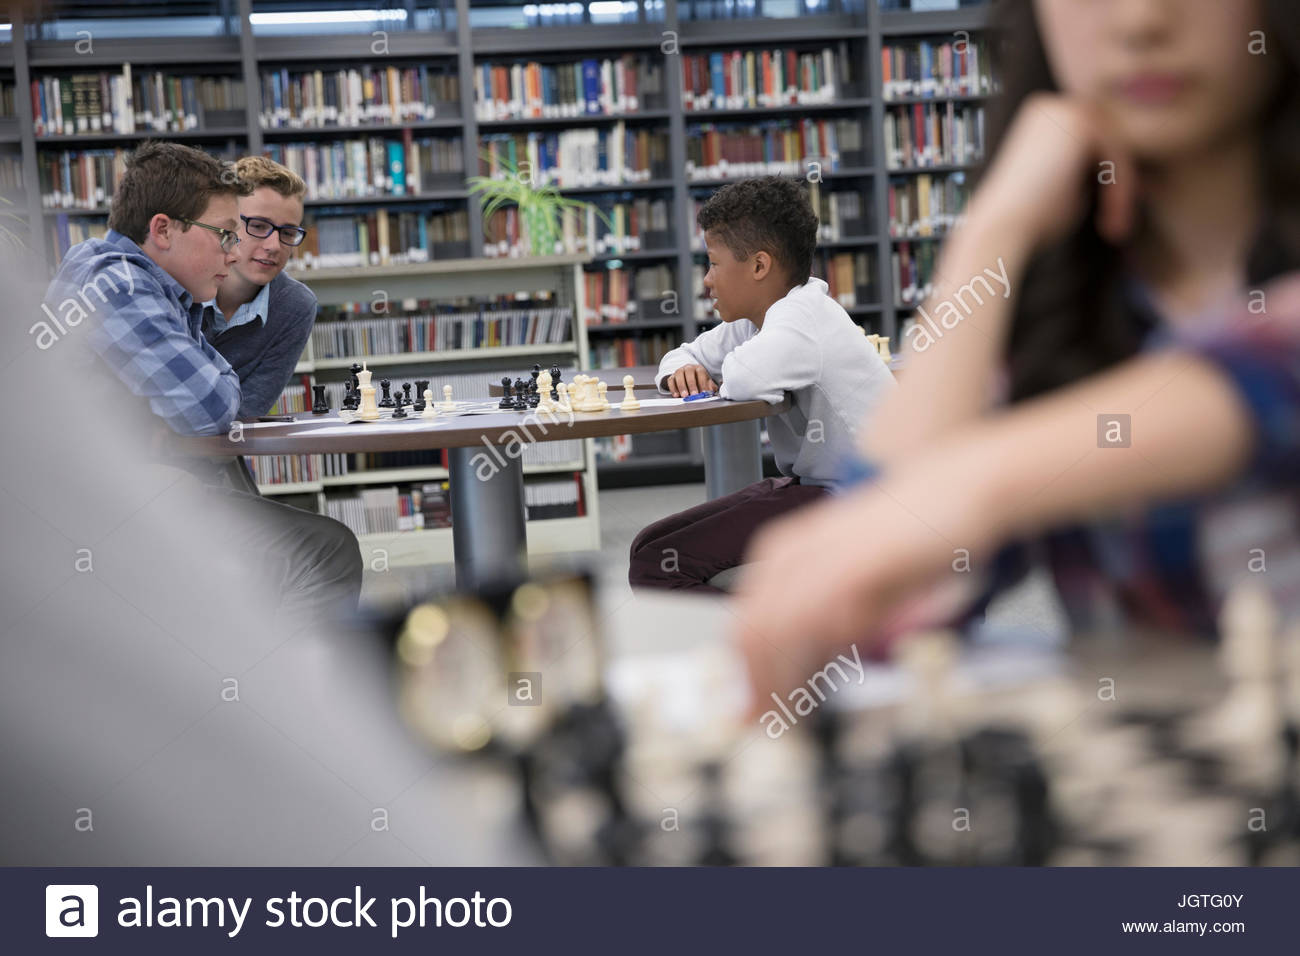 Middle school boy students playing chess in chess club library - Stock Image